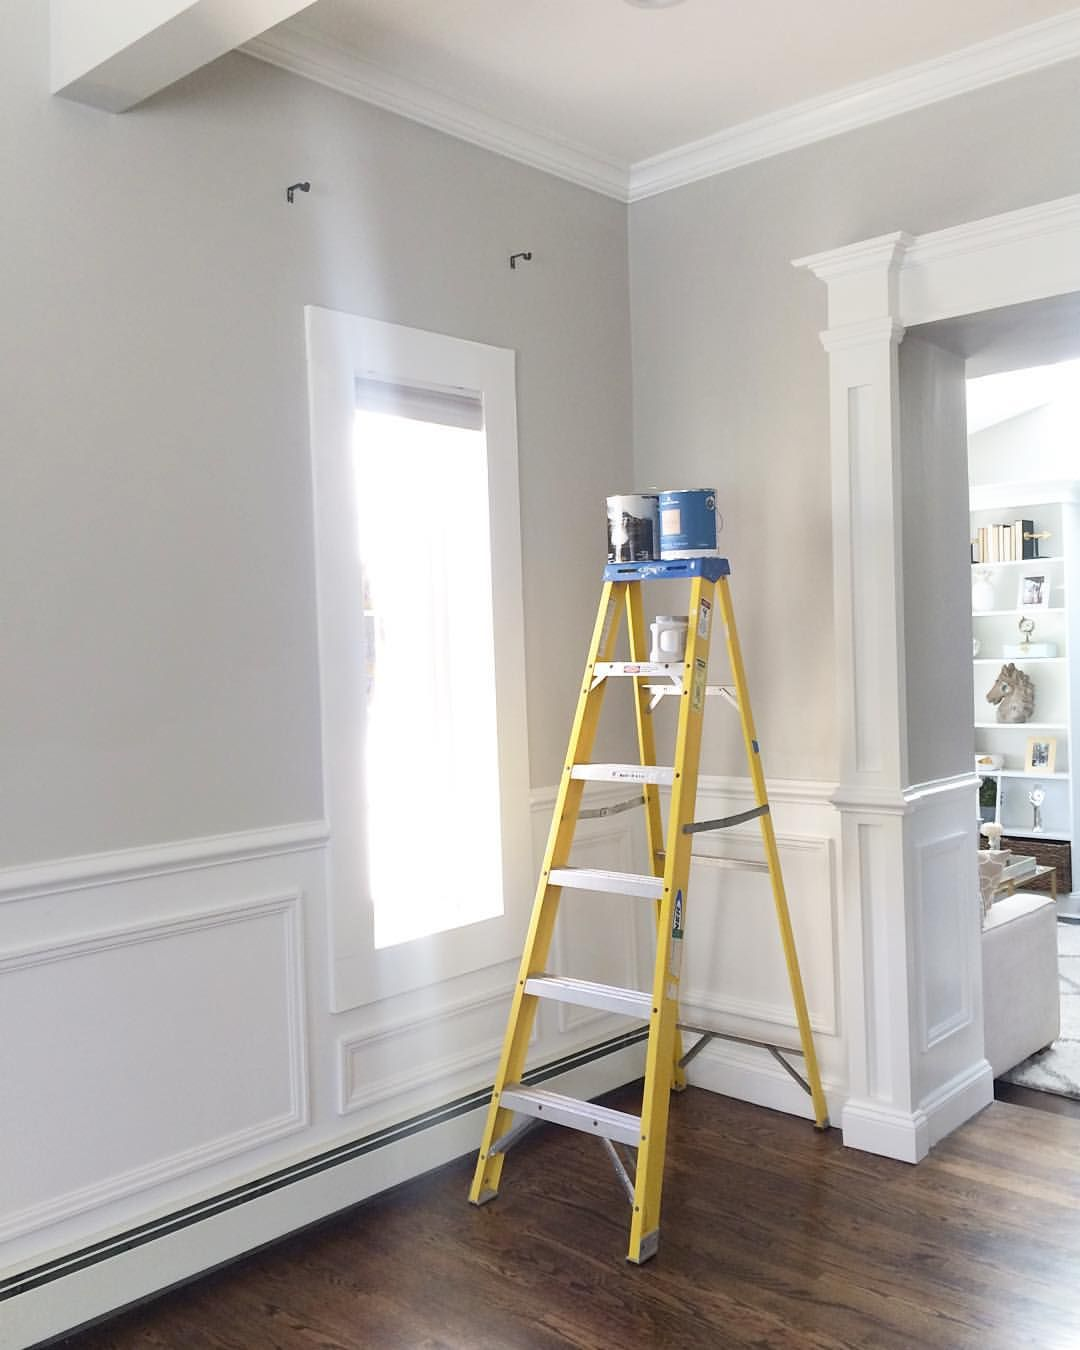 Repose Gray From Sherwin Williams All Star Light Warm That Works With Almost Anything